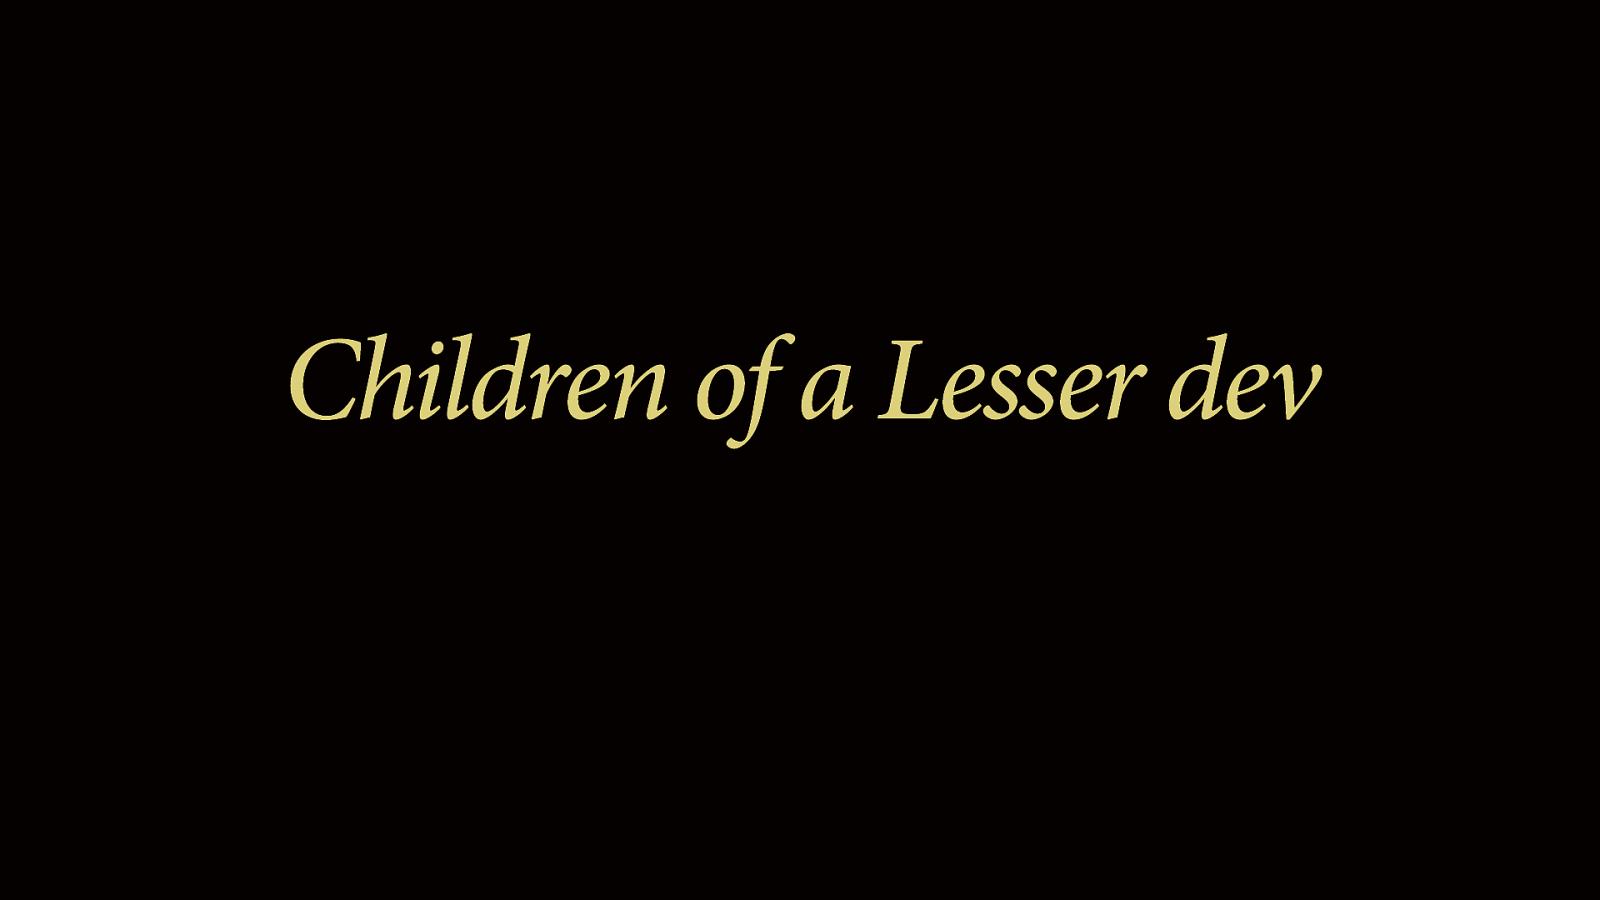 Children of a Lesser dev